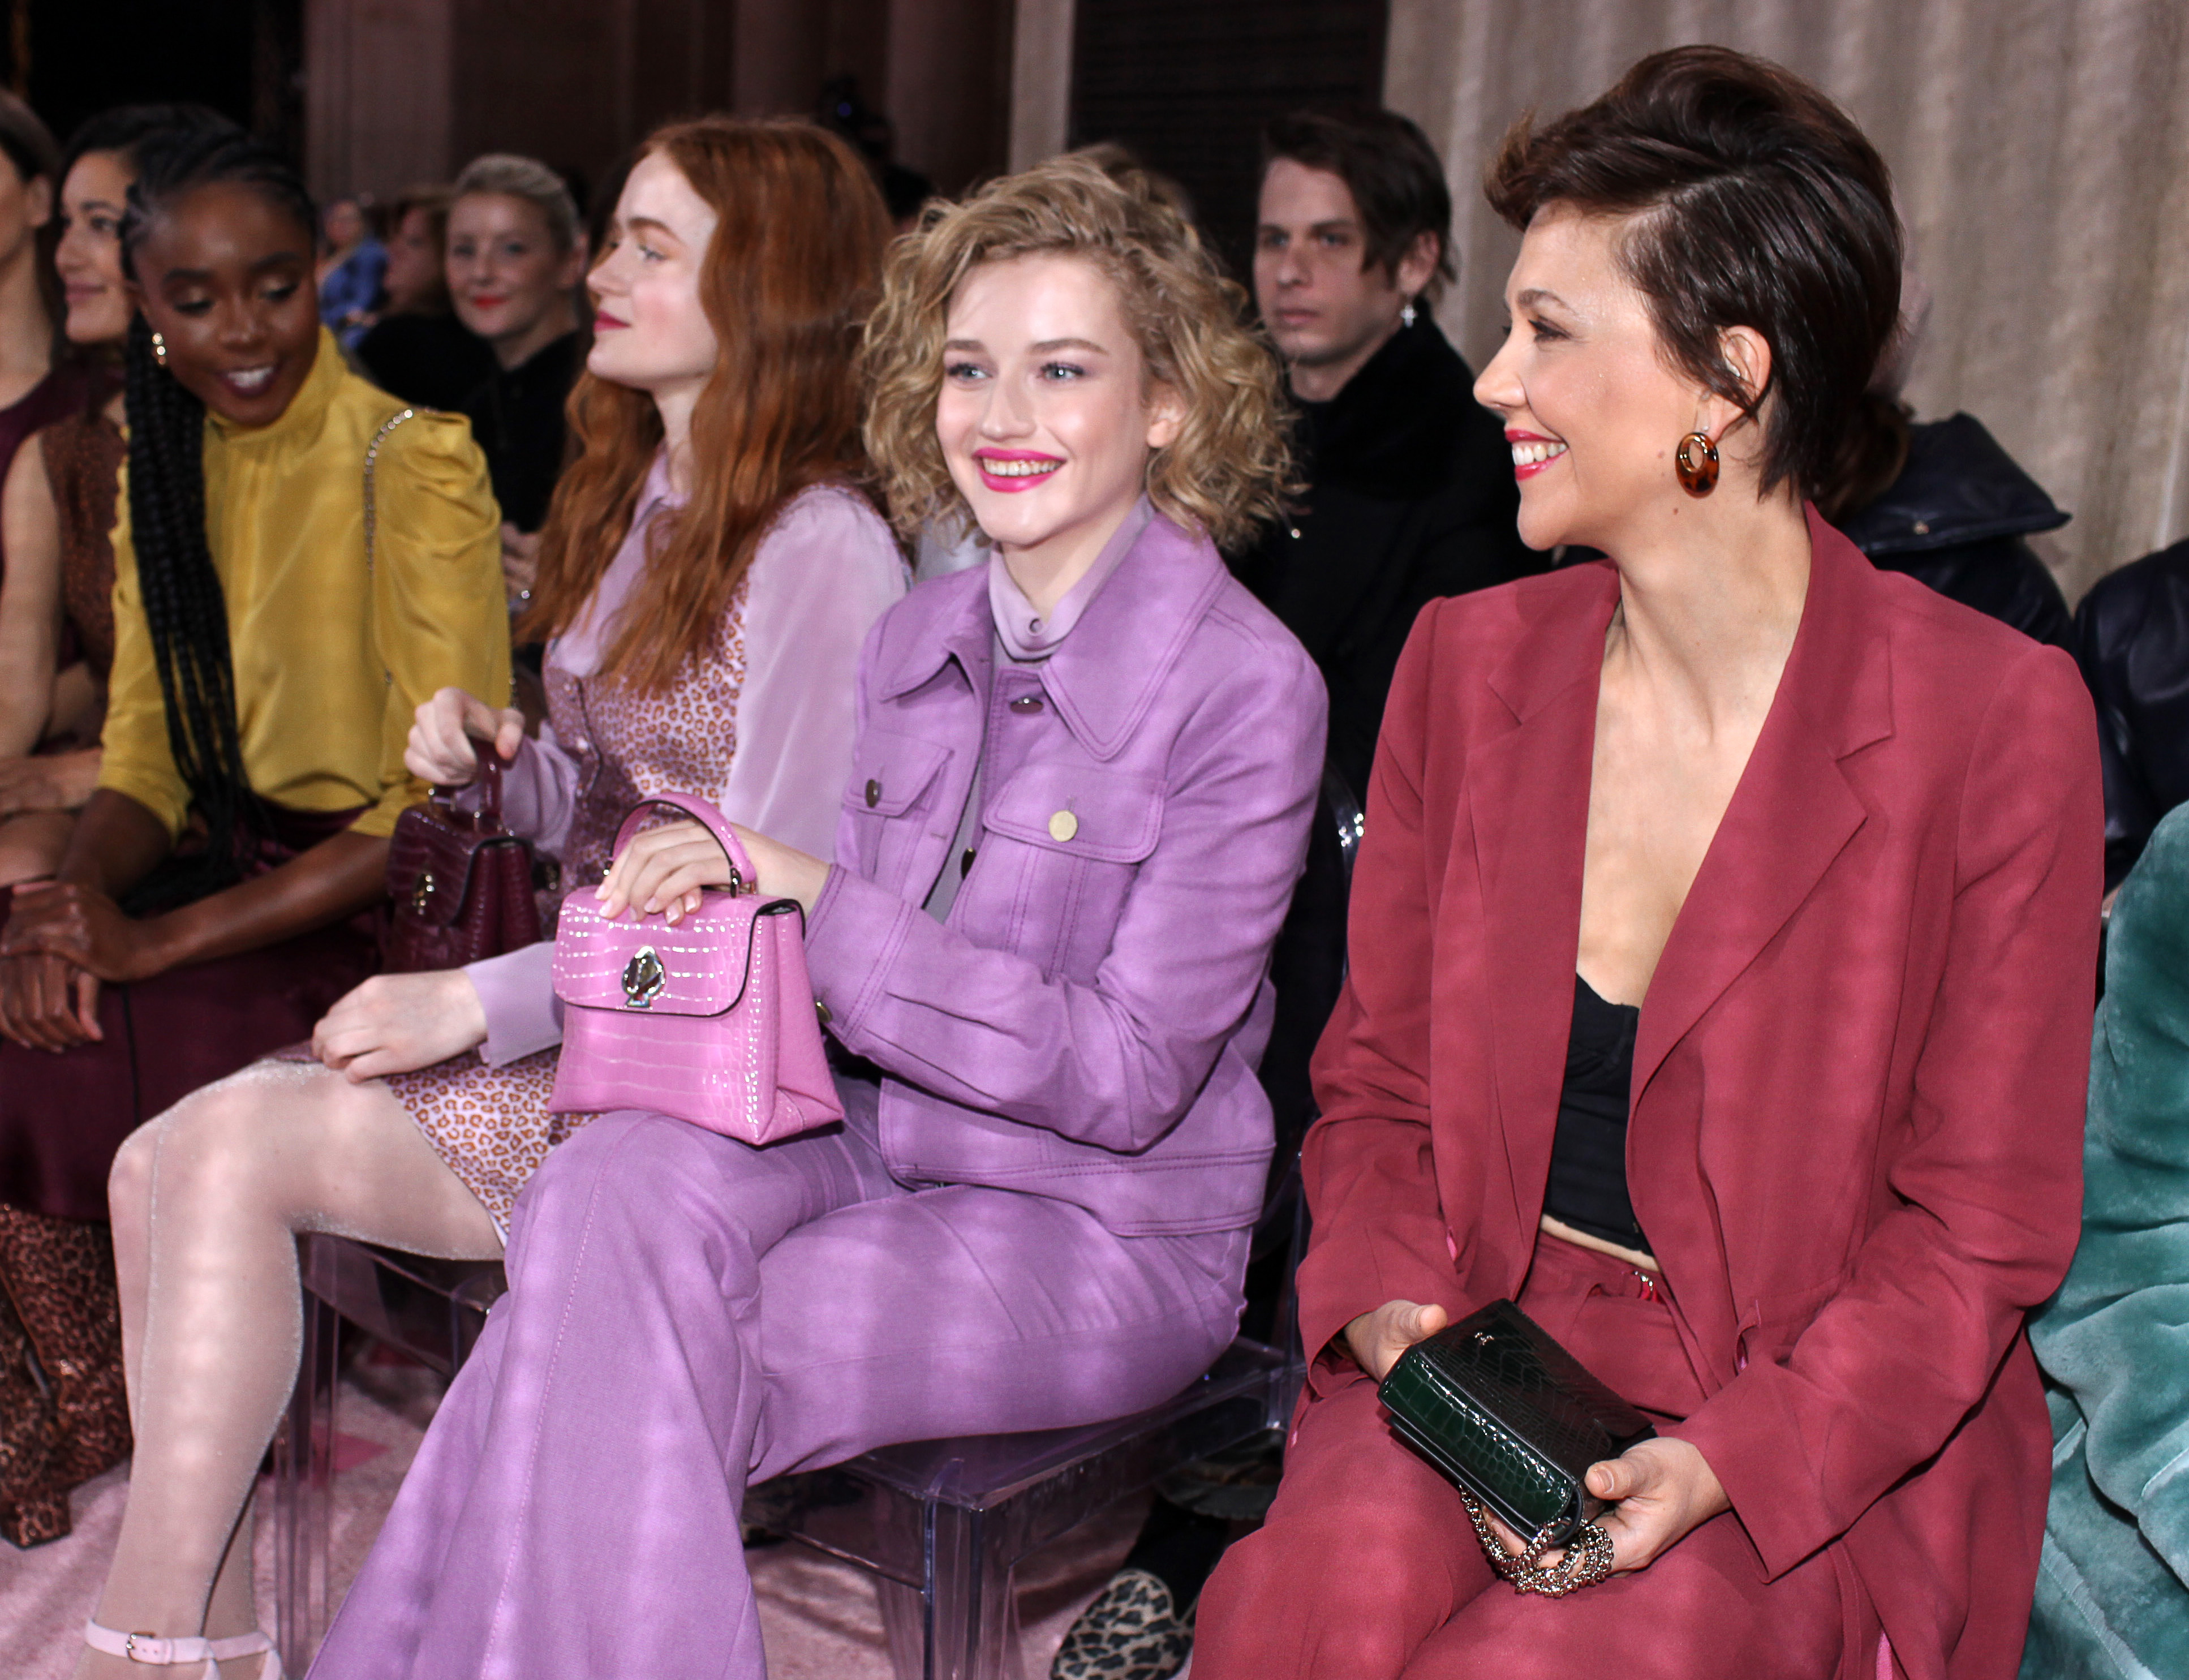 Julia Garner and Maggie Gyllenhaal in the front rowKate Spade show, Front Row, Fall Winter 2019, New York Fashion Week, USA - 08 Feb 2019